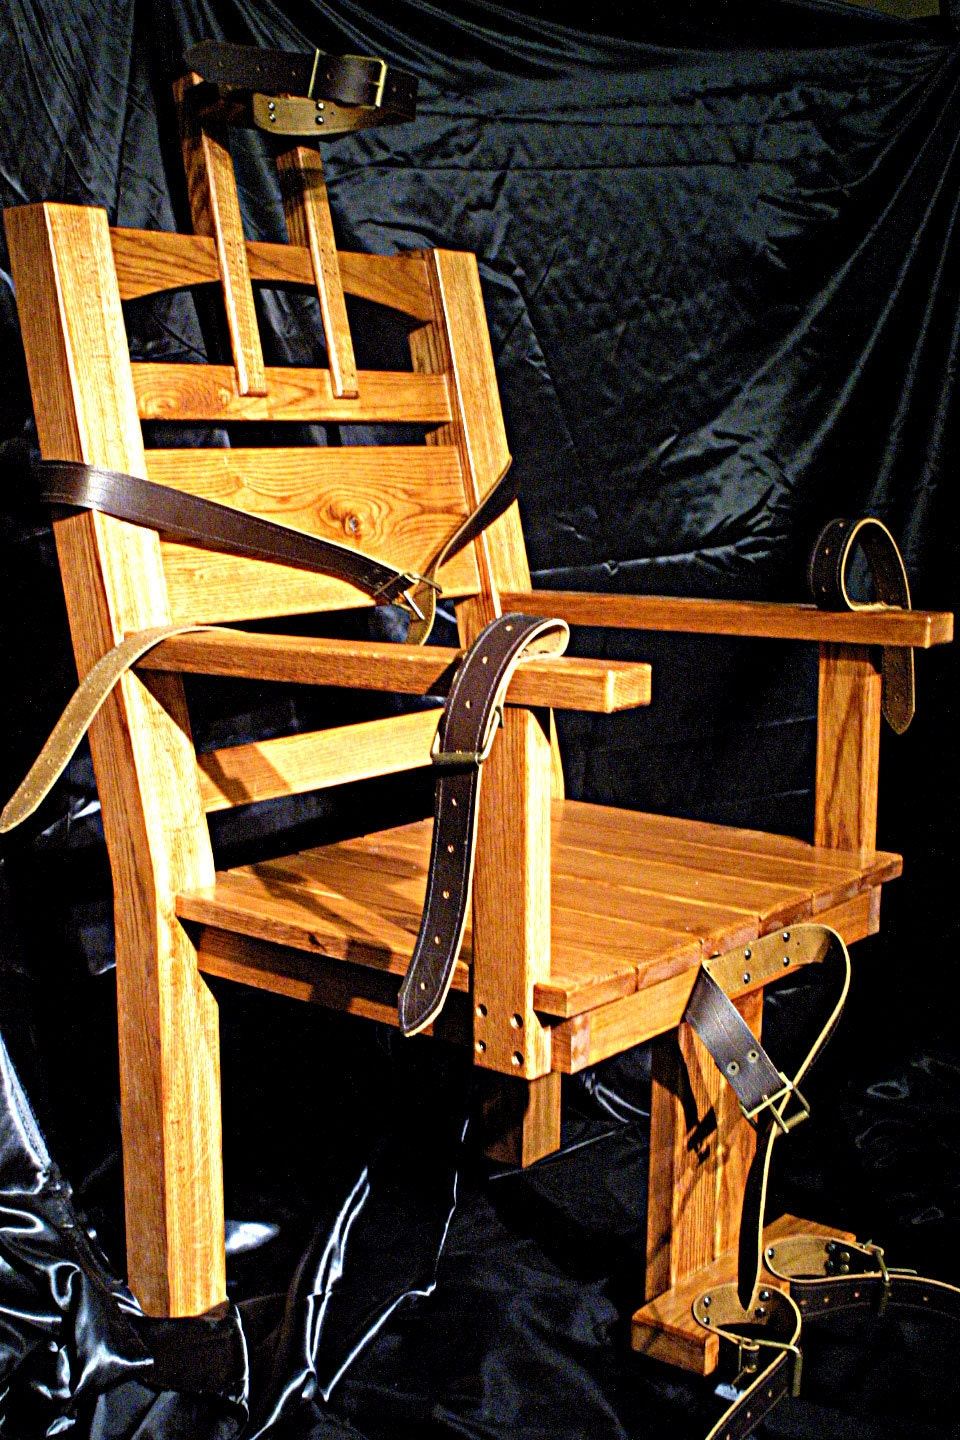 Electrical Chair 171 Replica Of An Electrical Chair Scale 01 01